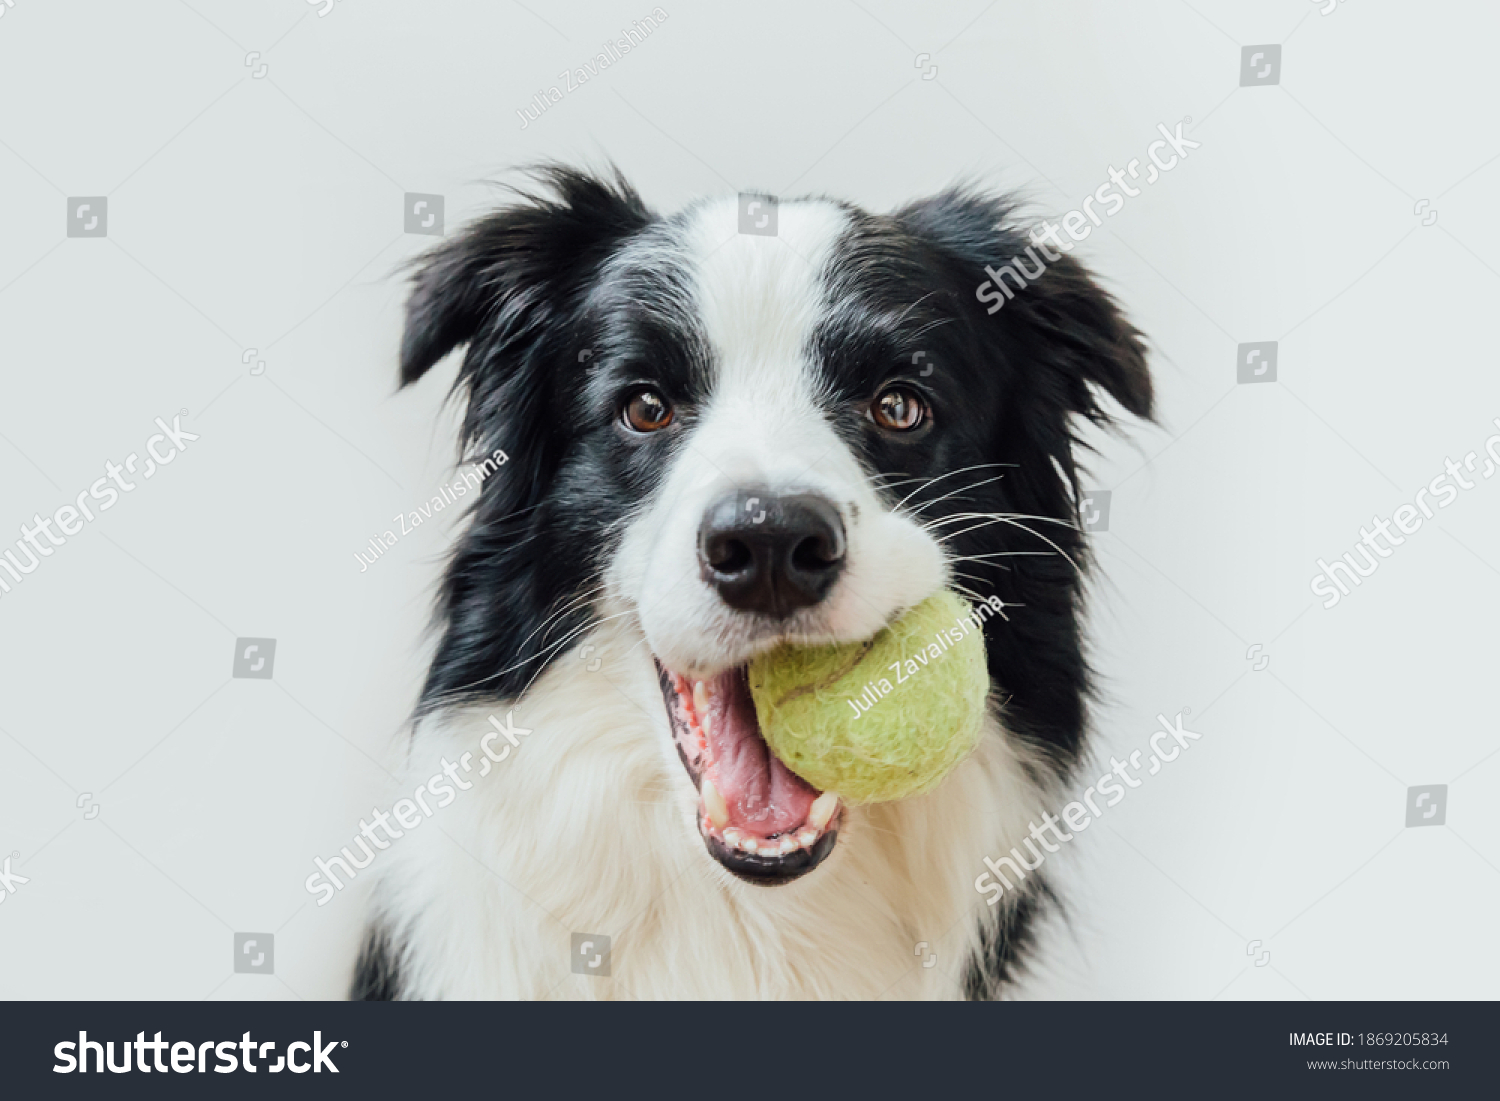 Funny portrait of cute puppy dog border collie holding toy ball in mouth isolated on white background. Purebred pet dog with tennis ball wants to playing with owner. Pet activity and animals concept #1869205834